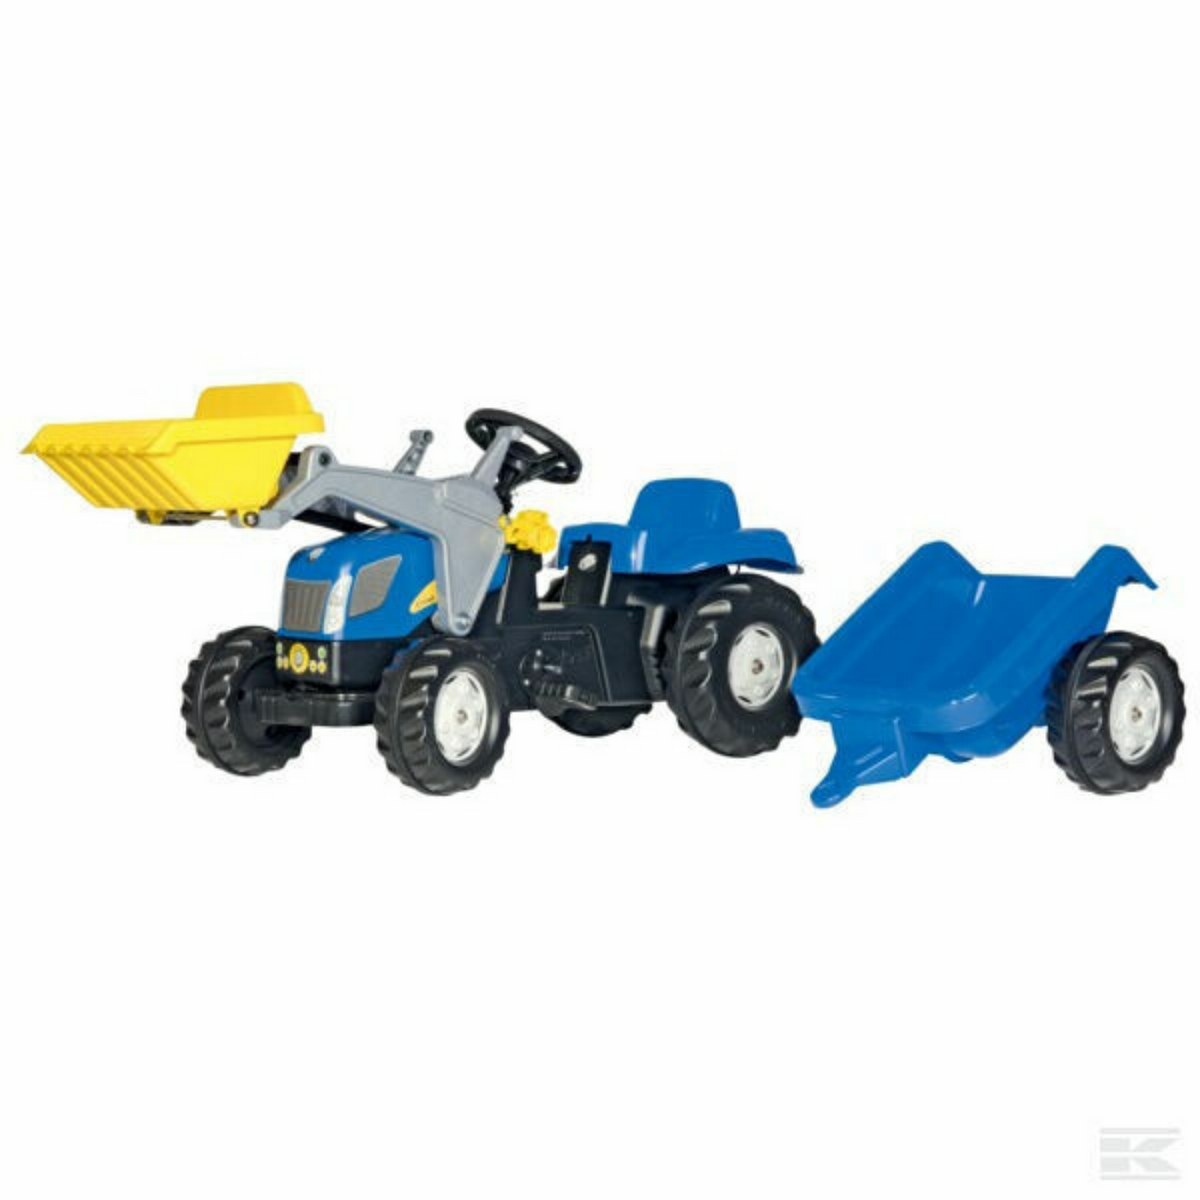 New Holland Pedal Tractor with Loader & Trailer